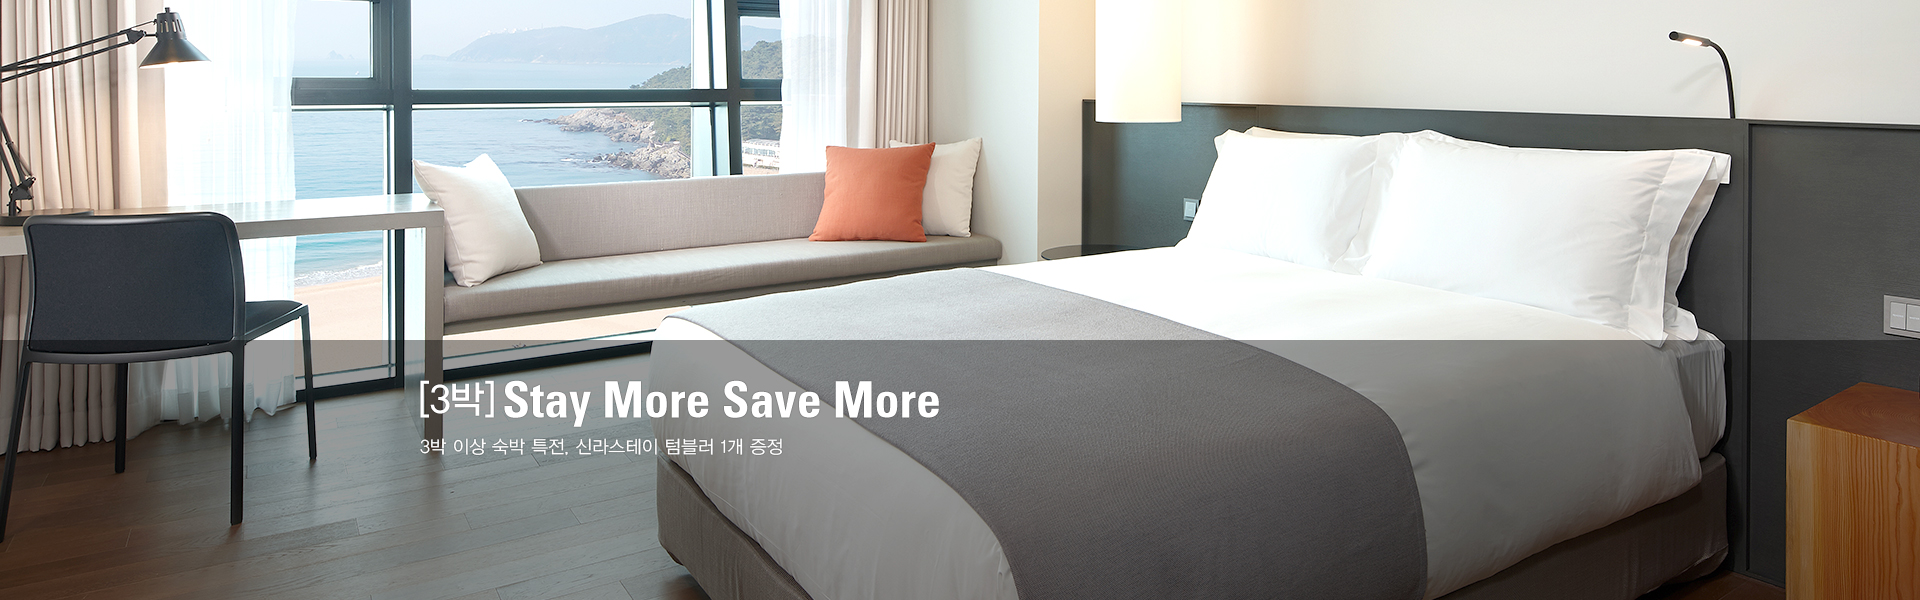 [3박]Stay More Save More